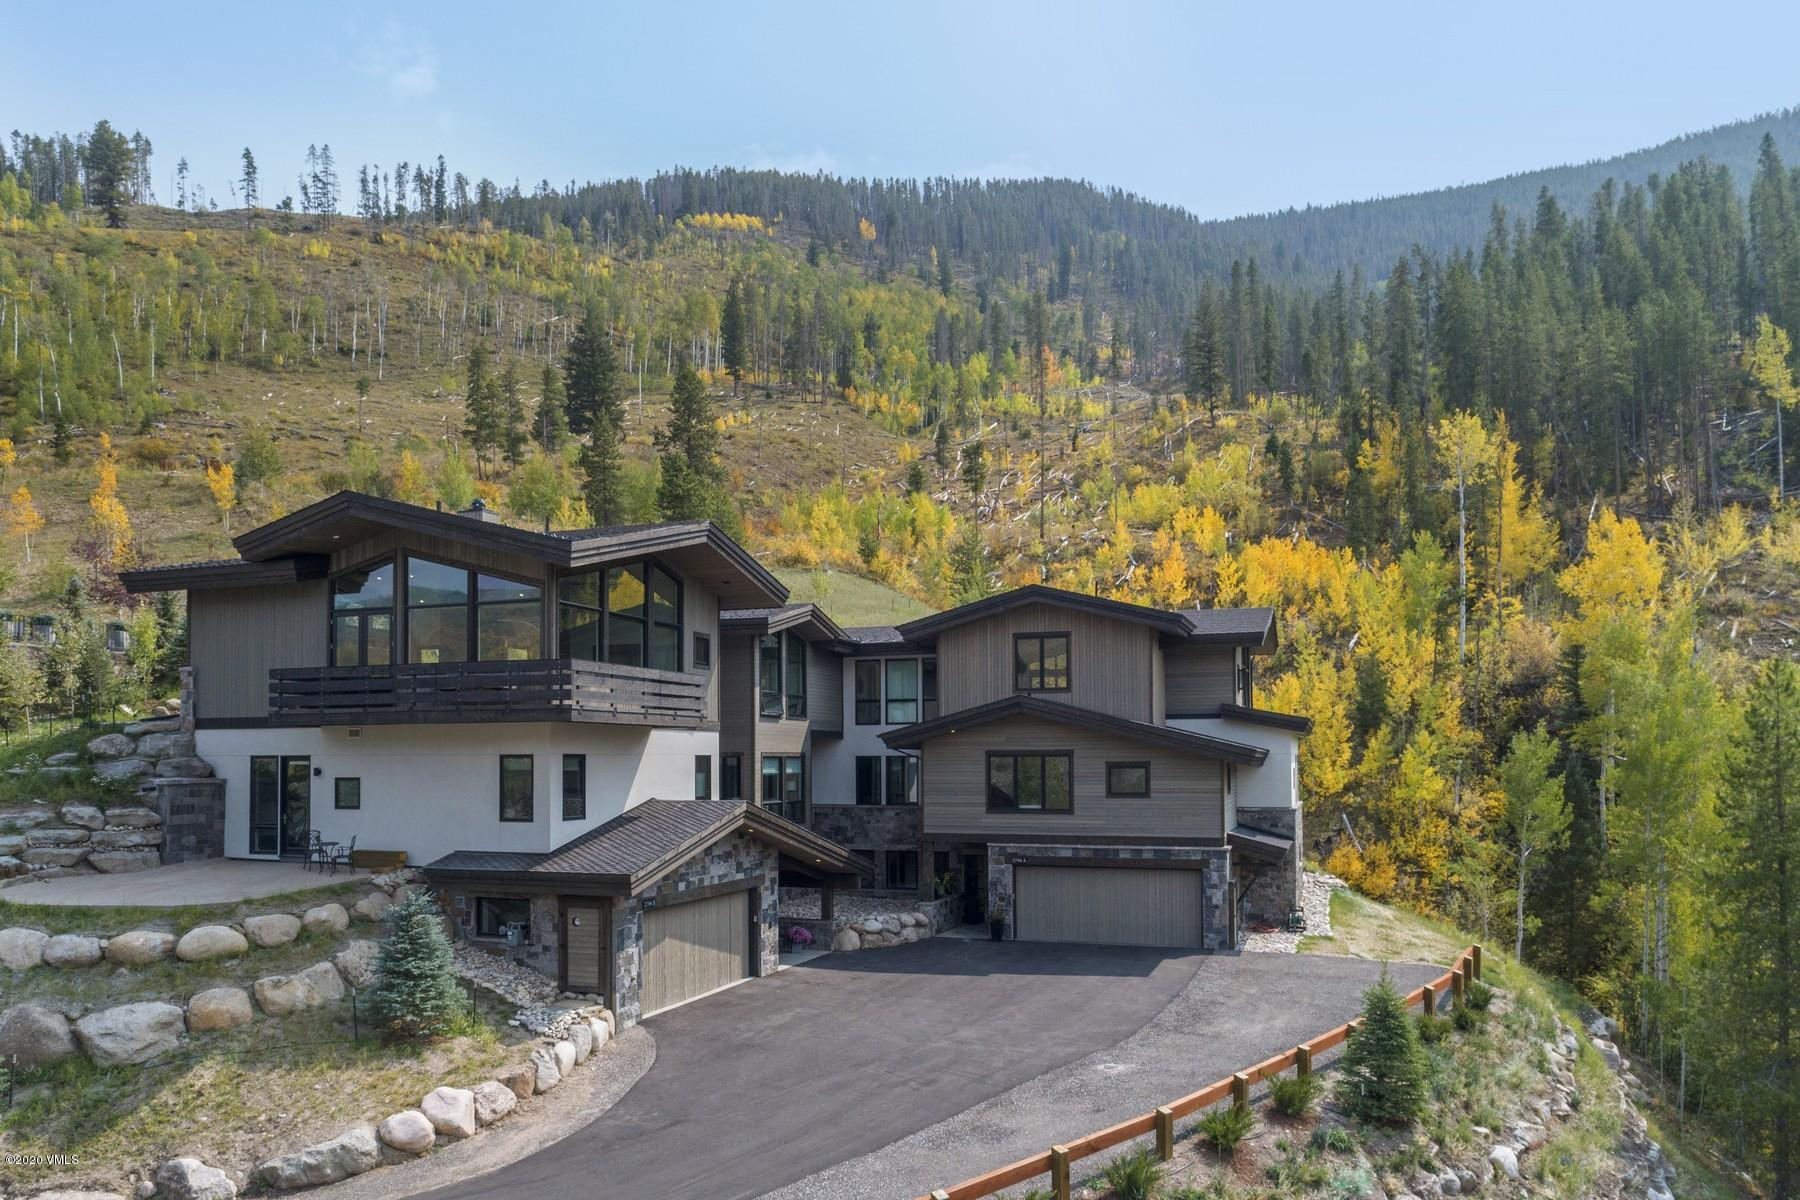 This spectacular new construction home is a harmonious blend of innovation and design. Situated at the top of Intermountain in West Vail, the 4-bedroom, 5-bath home is adjacent to open space with an abundance of magnificent views.The delightful layout on the main level encourages easy entertaining or cozy nights centered around the three-sided DaVinci fireplace. A second family area is found one floor below. The heated patio ensures year-round enjoyment.A gourmet kitchen is teeming with hidden surprises throughout. The statement piece and gathering place is the palatial island featuring a black-stained rift cut white oak base with contrasting Misterio Pental Quartz polished countertops. Relish every moment of the cooking process using the functional, yet beautiful Wolf appliances which include the 36-inch range, double ovens, steam oven, built-in coffee system, Sub-Zero refrigerator and microwave drawer. Custom hard maple cabinetry from Cutting Edge Woodworking seamlessly conceals the refrigerator and dishwasher as well as extras like the built-in spice drawer, knife holders and waste receptacles. Clean-up is also a breeze with the Asko dishwasher. Fulfilling the idea of seamless transitions throughout the home is the Sonos Surround Sound system with speakers in the great room, master suite, kitchen, and outdoor living spaces.  The home also features a commercial elevator, is pre-wired for a security system, has in-floor radiant heat throughout and features an Energy Recovery Ventilation (ERV) system that brings clean, fresh air into the home while maintaining the inside temperature. mls.snowberryluxury.com